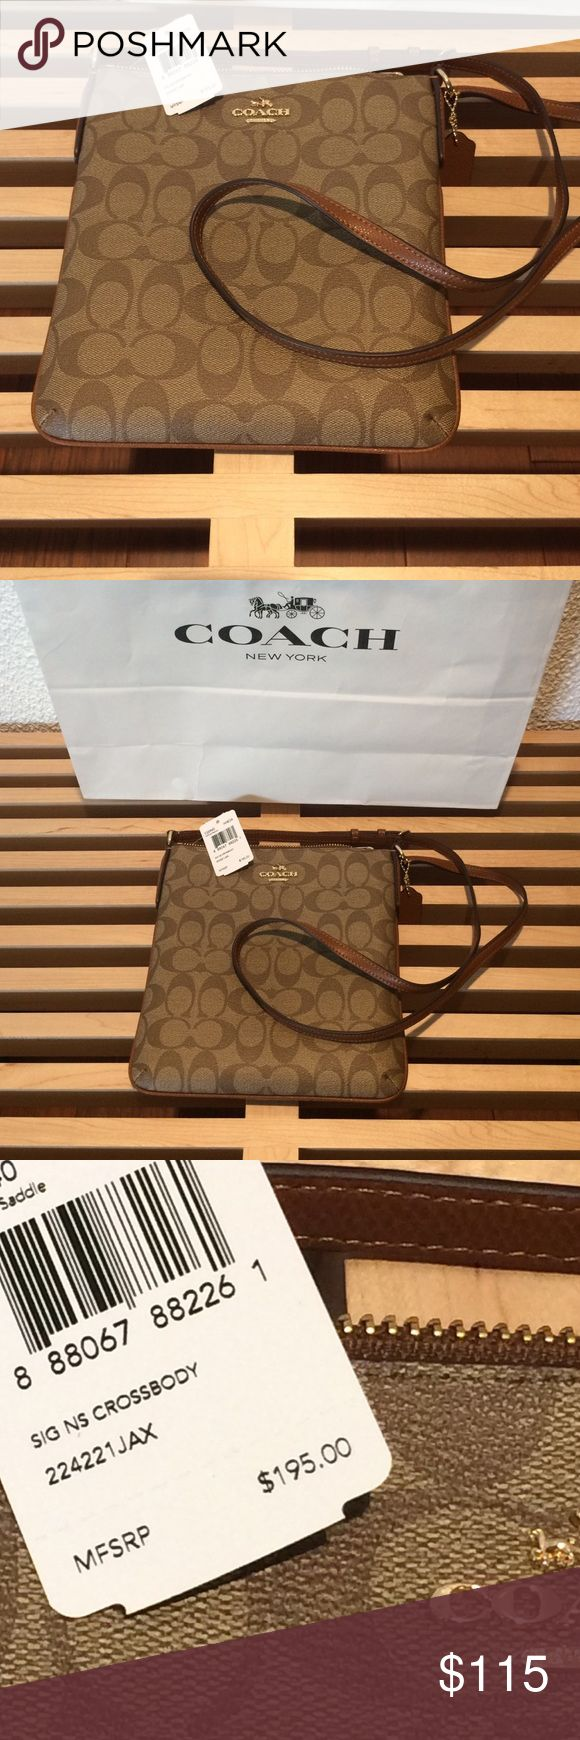 Coach Swingpack Crossbody NWT Coach north/south swingpack crossbody. Leather trim and strap. Interior slip-in pocket, and outside compartment with snap. Make me an offer! Coach Bags Crossbody Bags